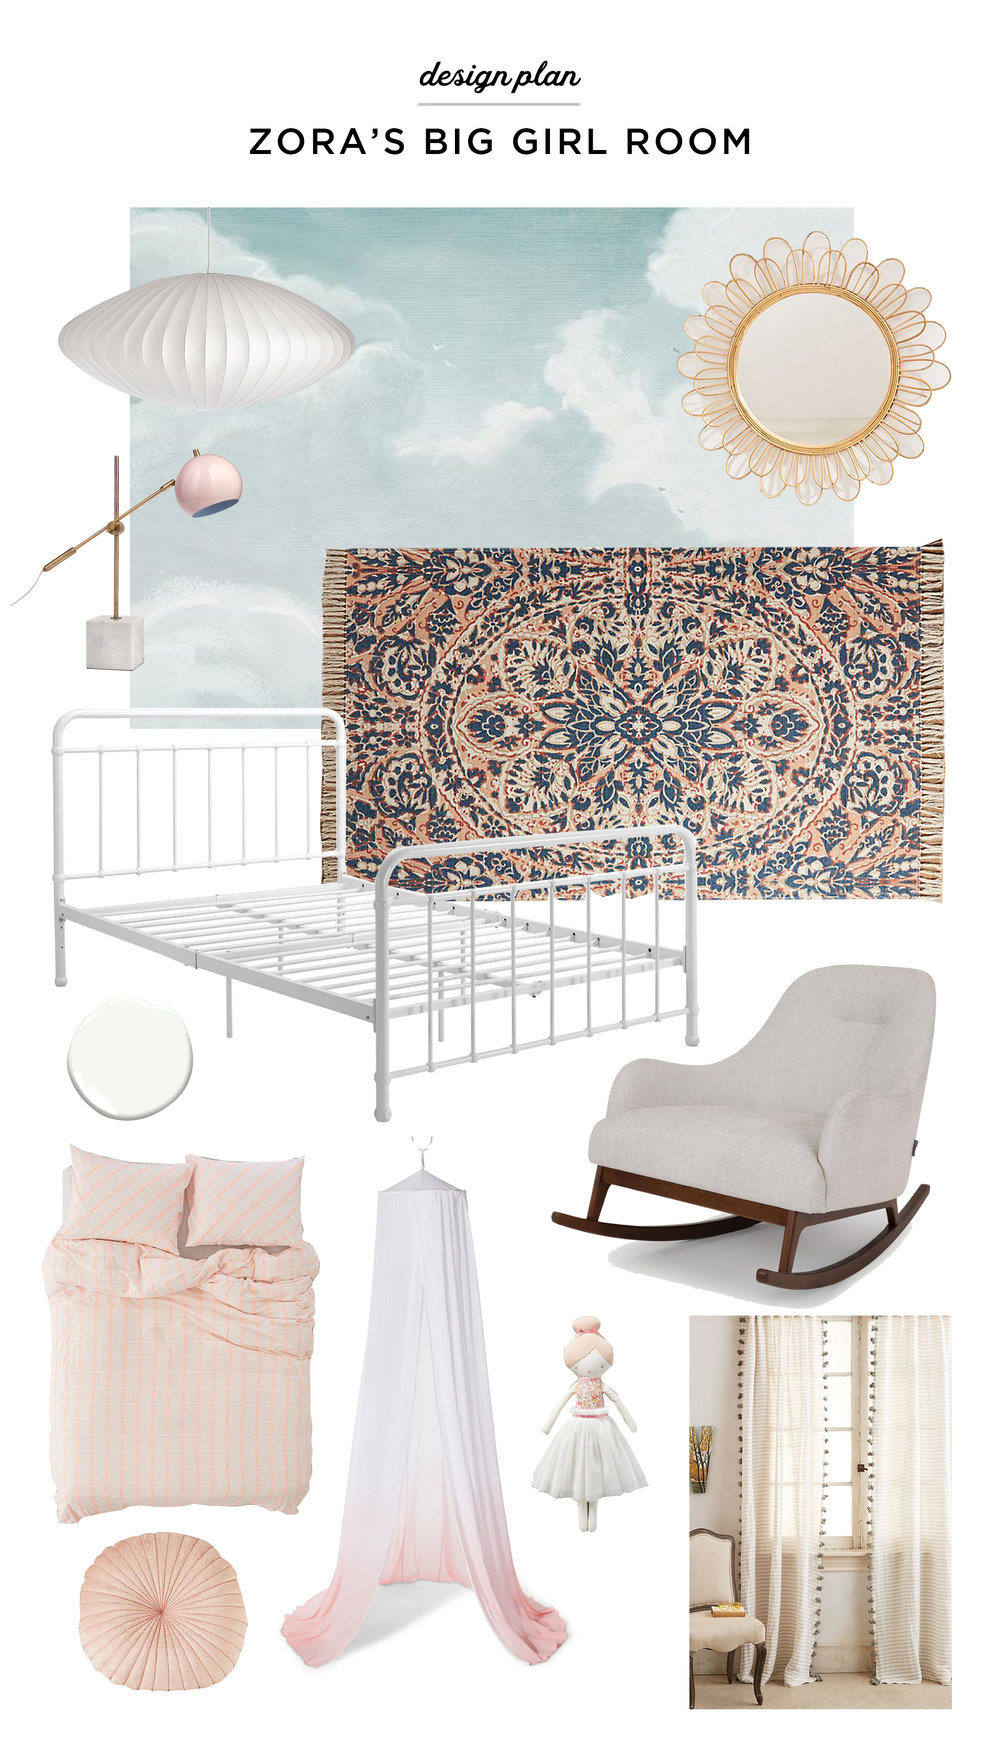 zora's-big-girl-room-plan.jpg